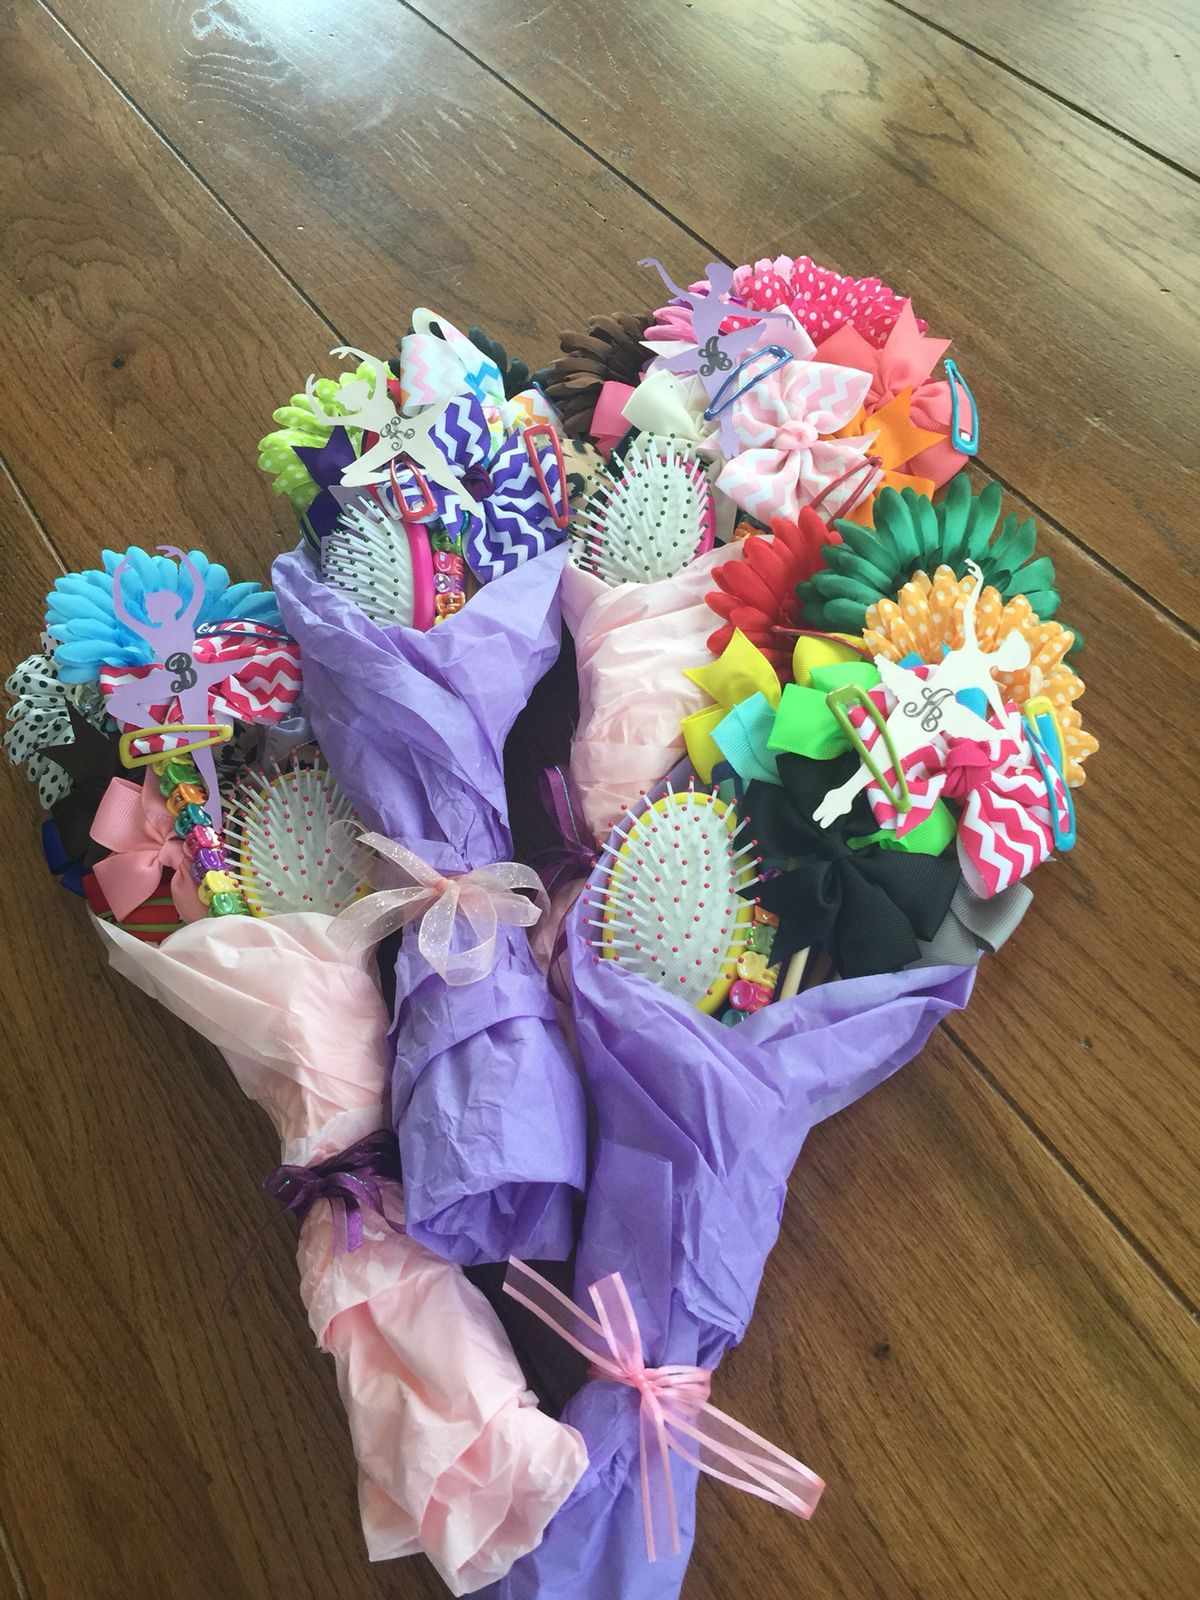 Flower Girl Baskets Dublin : Images about hair clips and cute headbands on